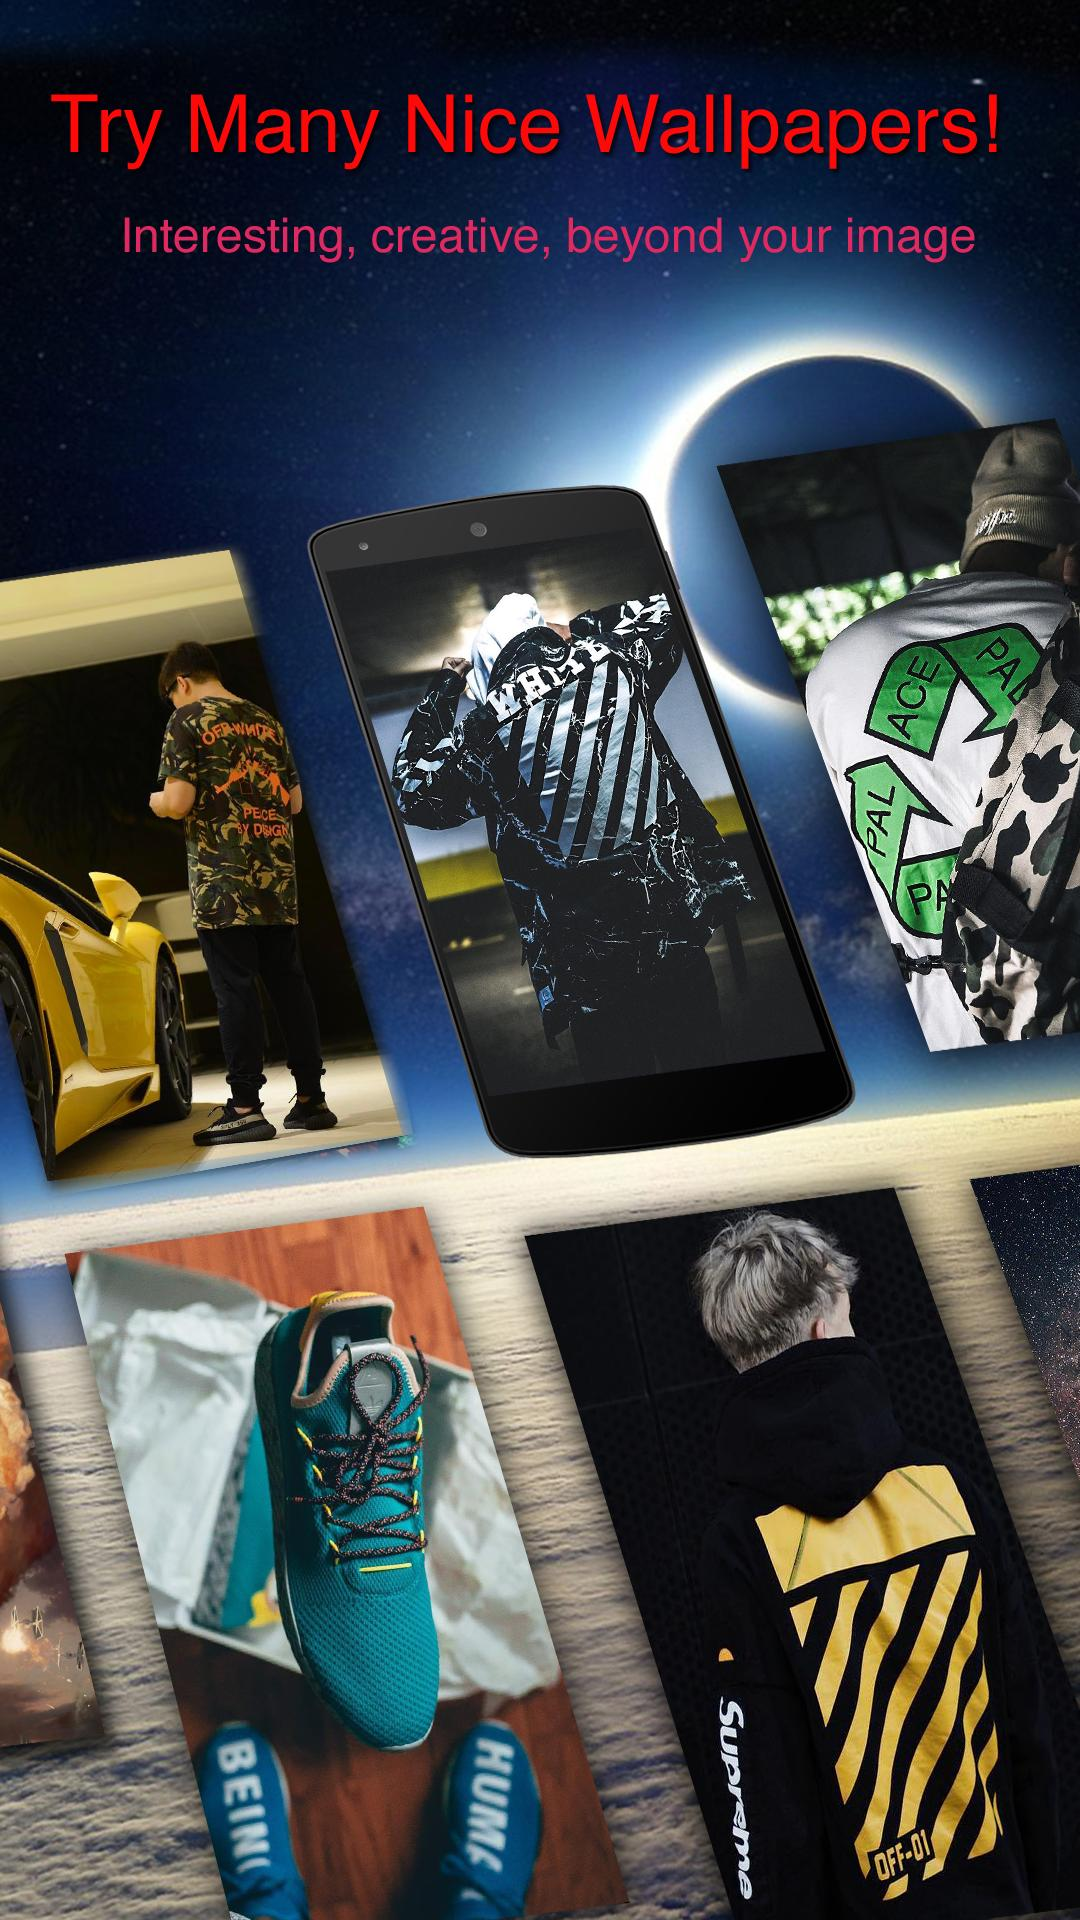 Hypebeast Wallpapers Hd 4k For Android Apk Download